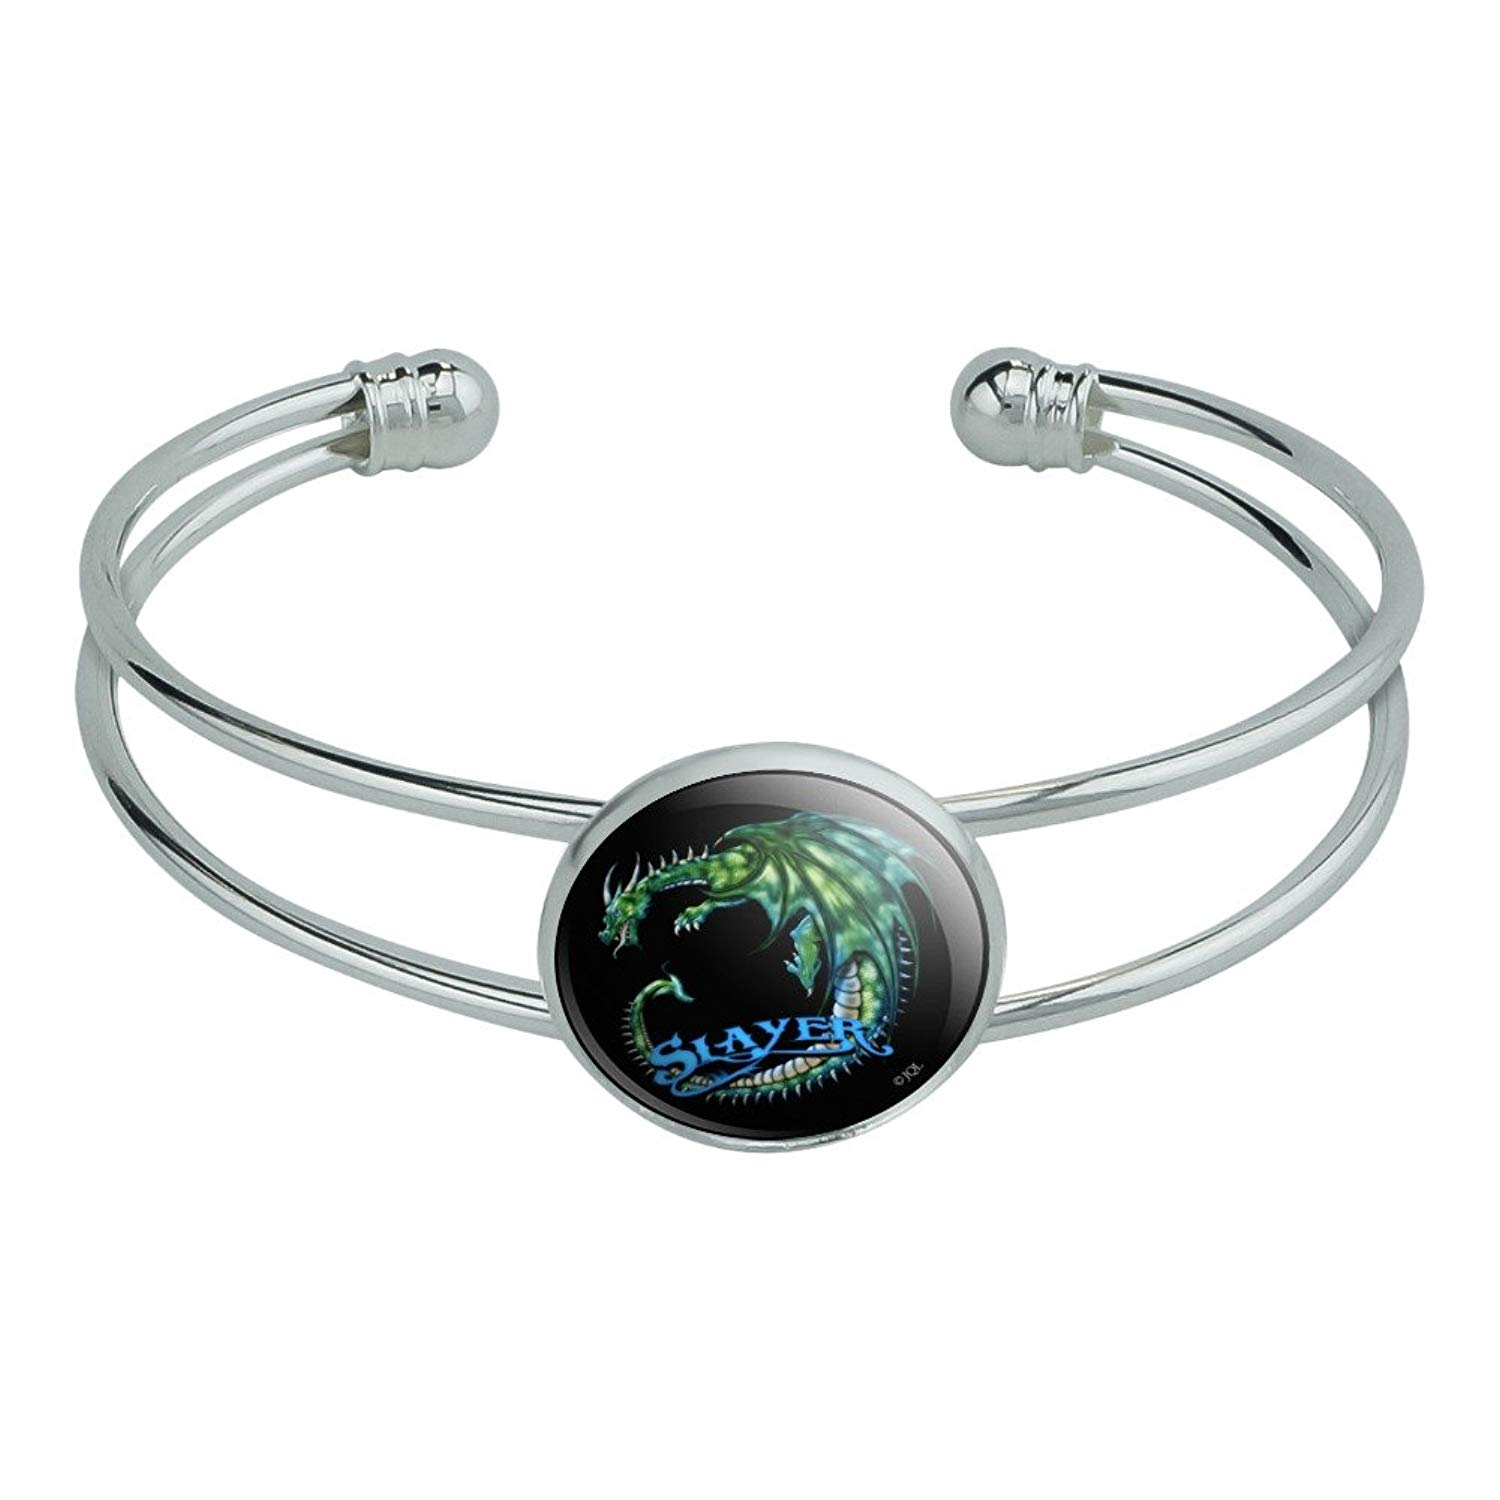 Graphics and More Dragon Slayer Fantasy Gaming Novelty Silver Plated Metal Cuff Bangle Bracelet